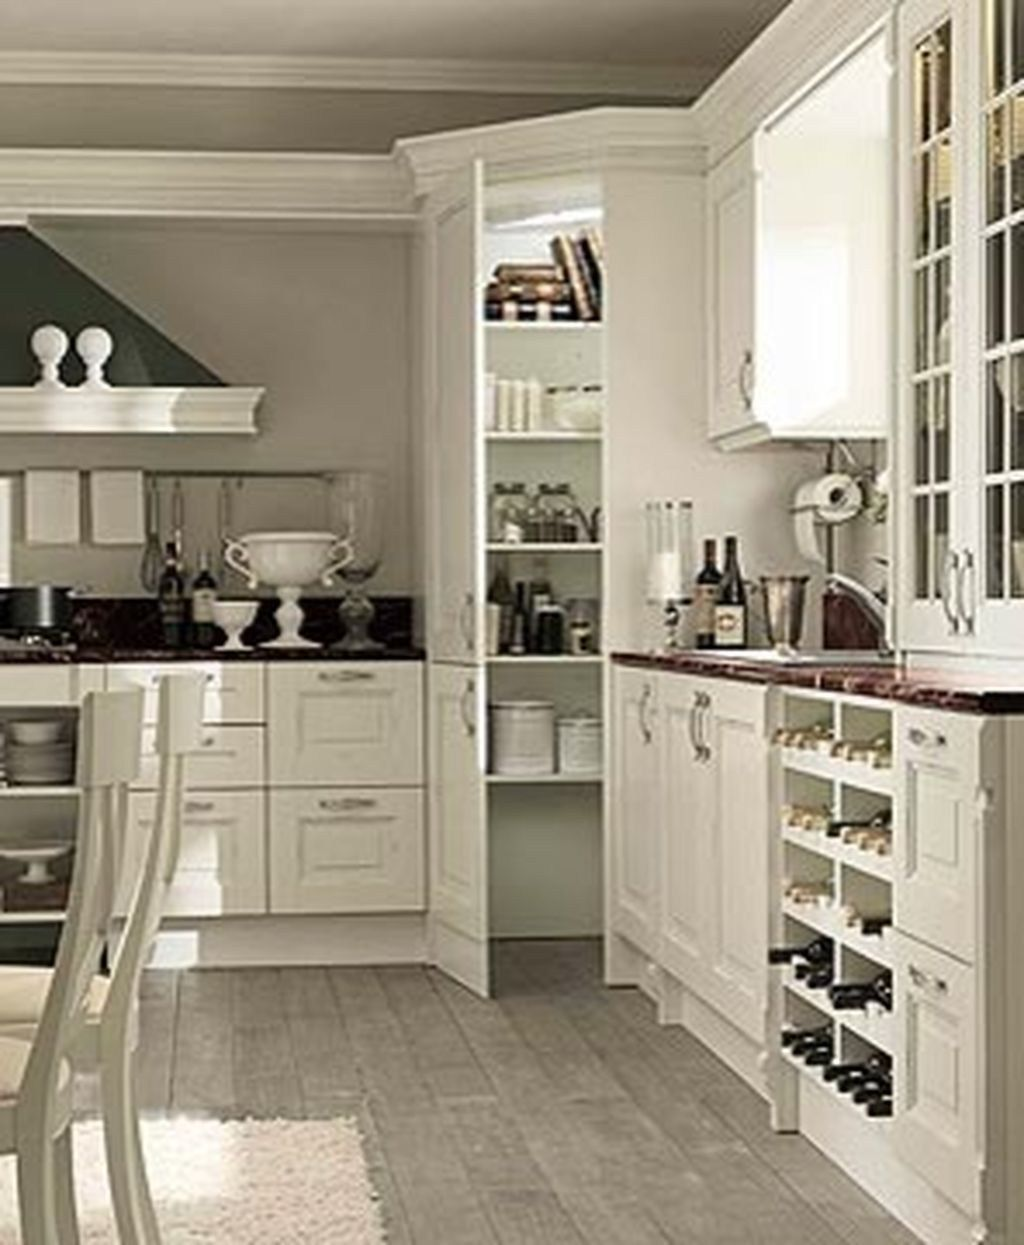 99+ Totally Outstanding Traditional Kitchen Decoration Ideas - Corner kitchen pantry, Kitchen pantry design, Kitchen layout, Kitchen cabinet design, Corner pantry cabinet, Corner pantry - Contemporary design utilizes a sleek style  Contemporary can result from a specific style of decorating which is easy, plain and […]